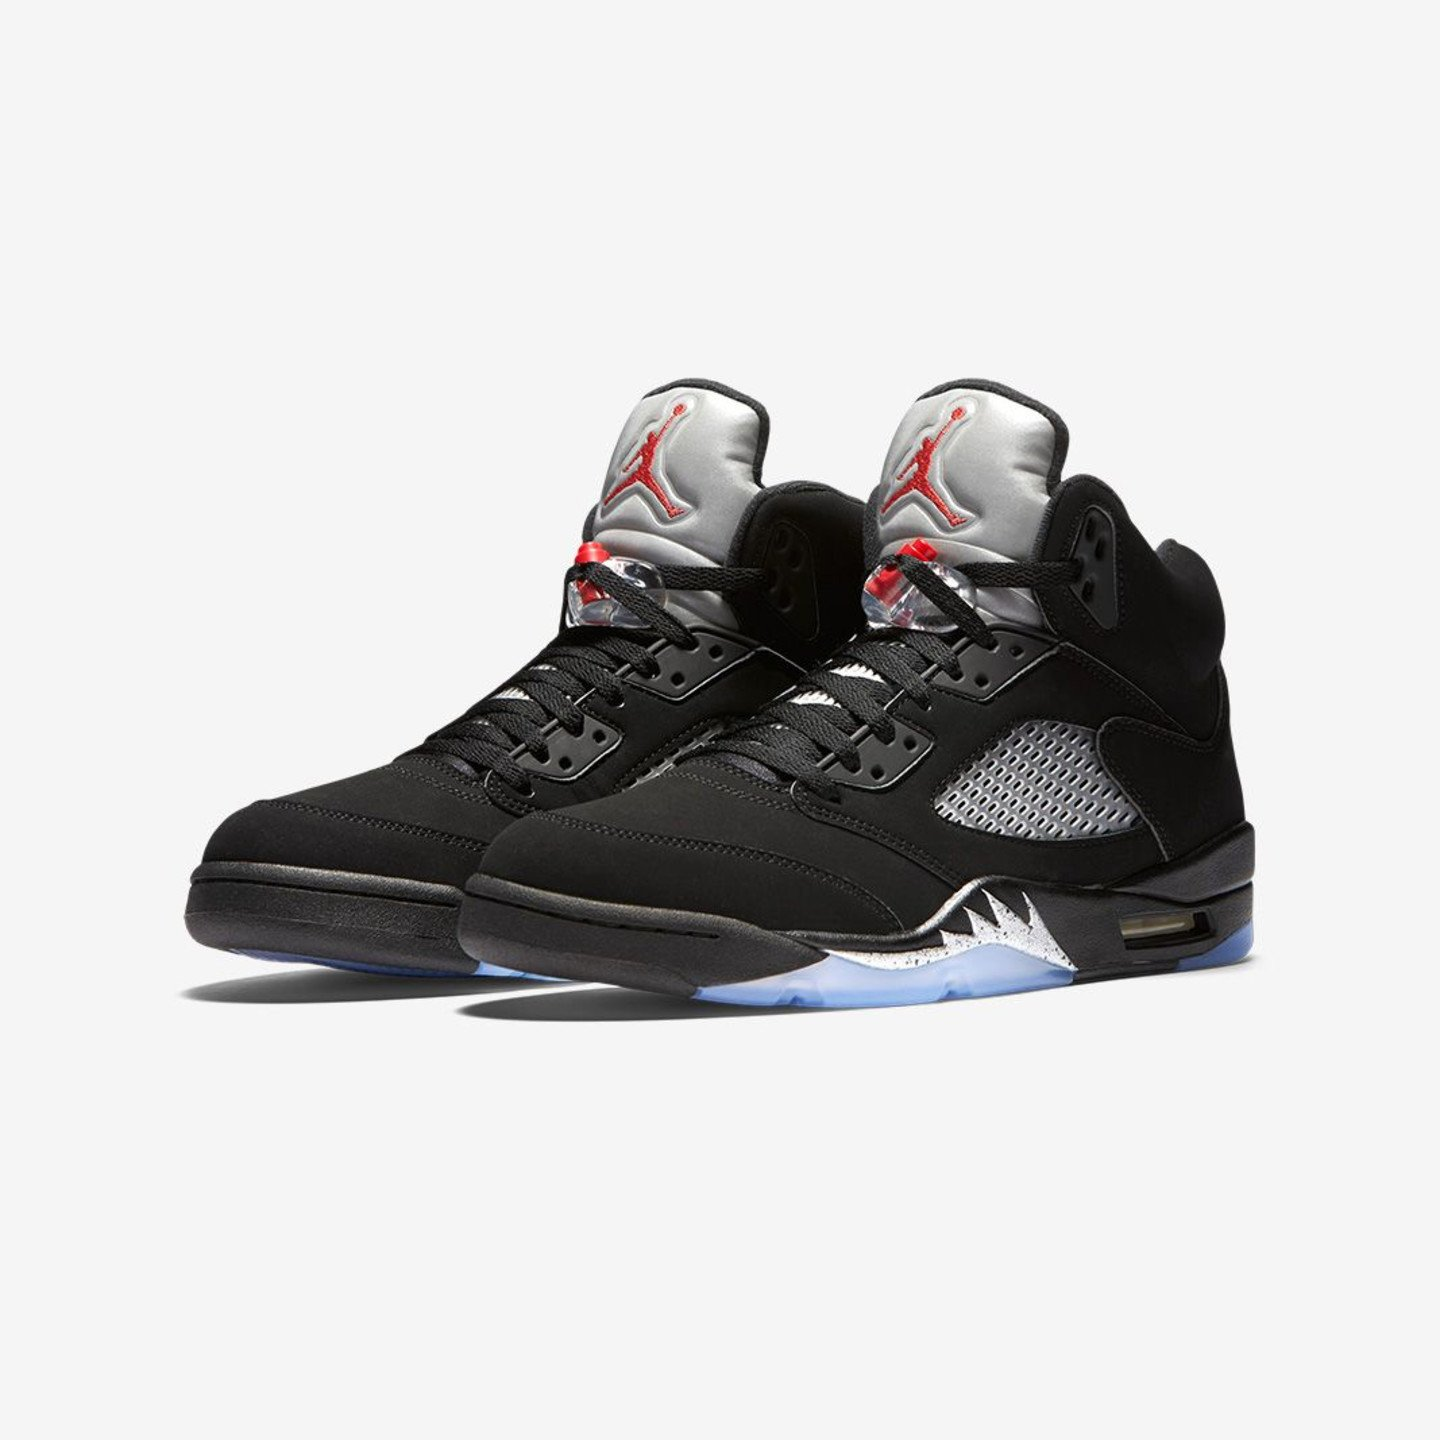 Jordan Air Jordan 5 Retro OG BG 'Metallic Silver' Black / Metallic Silver / Fire Red 845036-003